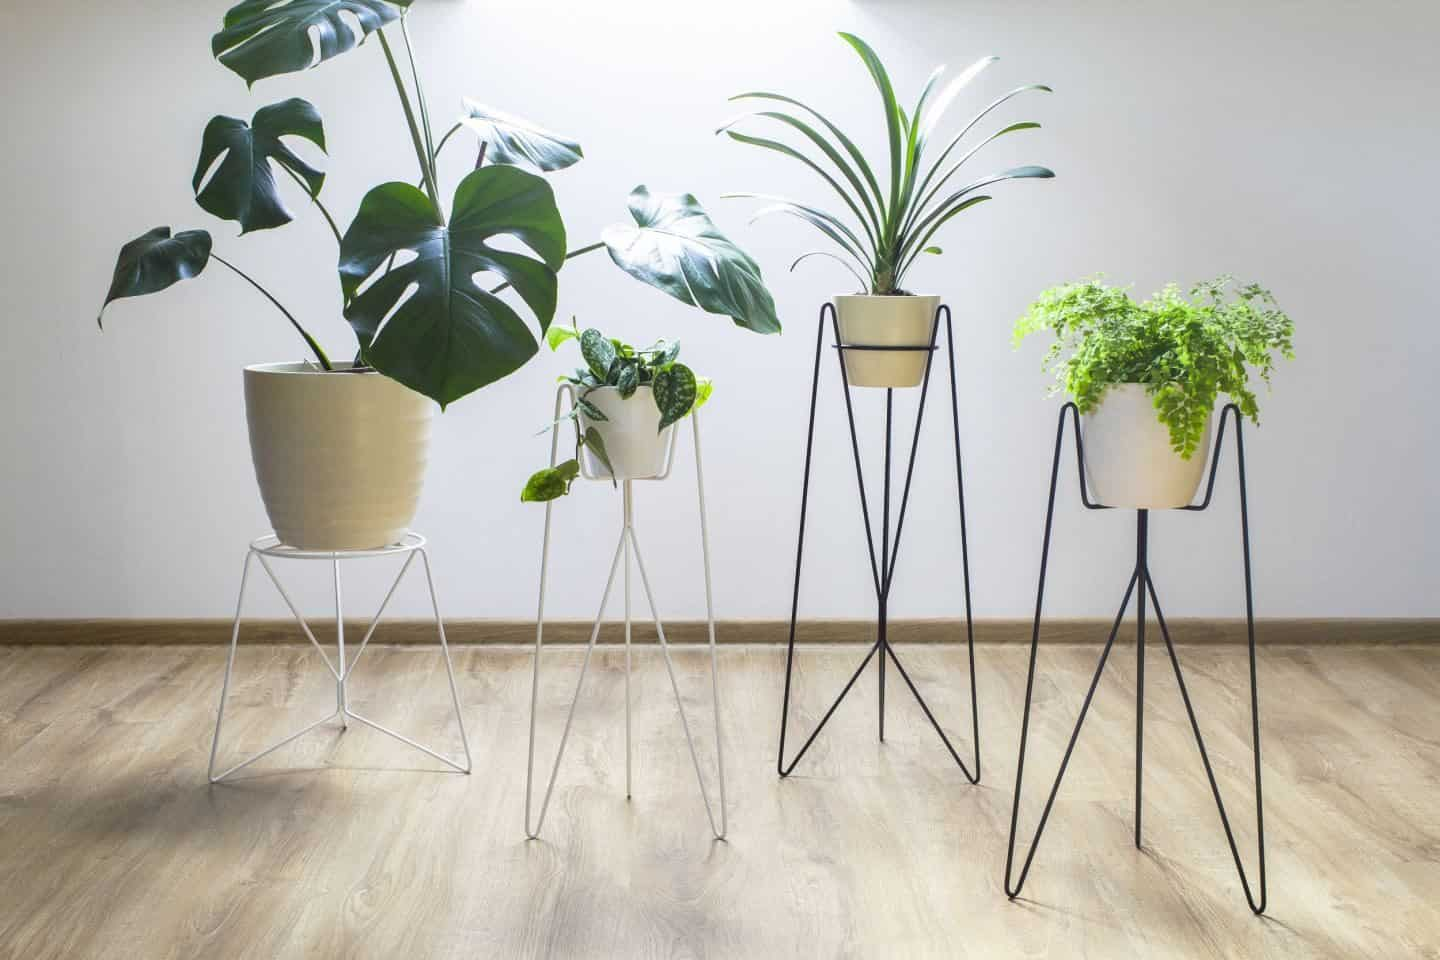 Minimalist design-led plant holders and stands from Polish design studio Bujnie